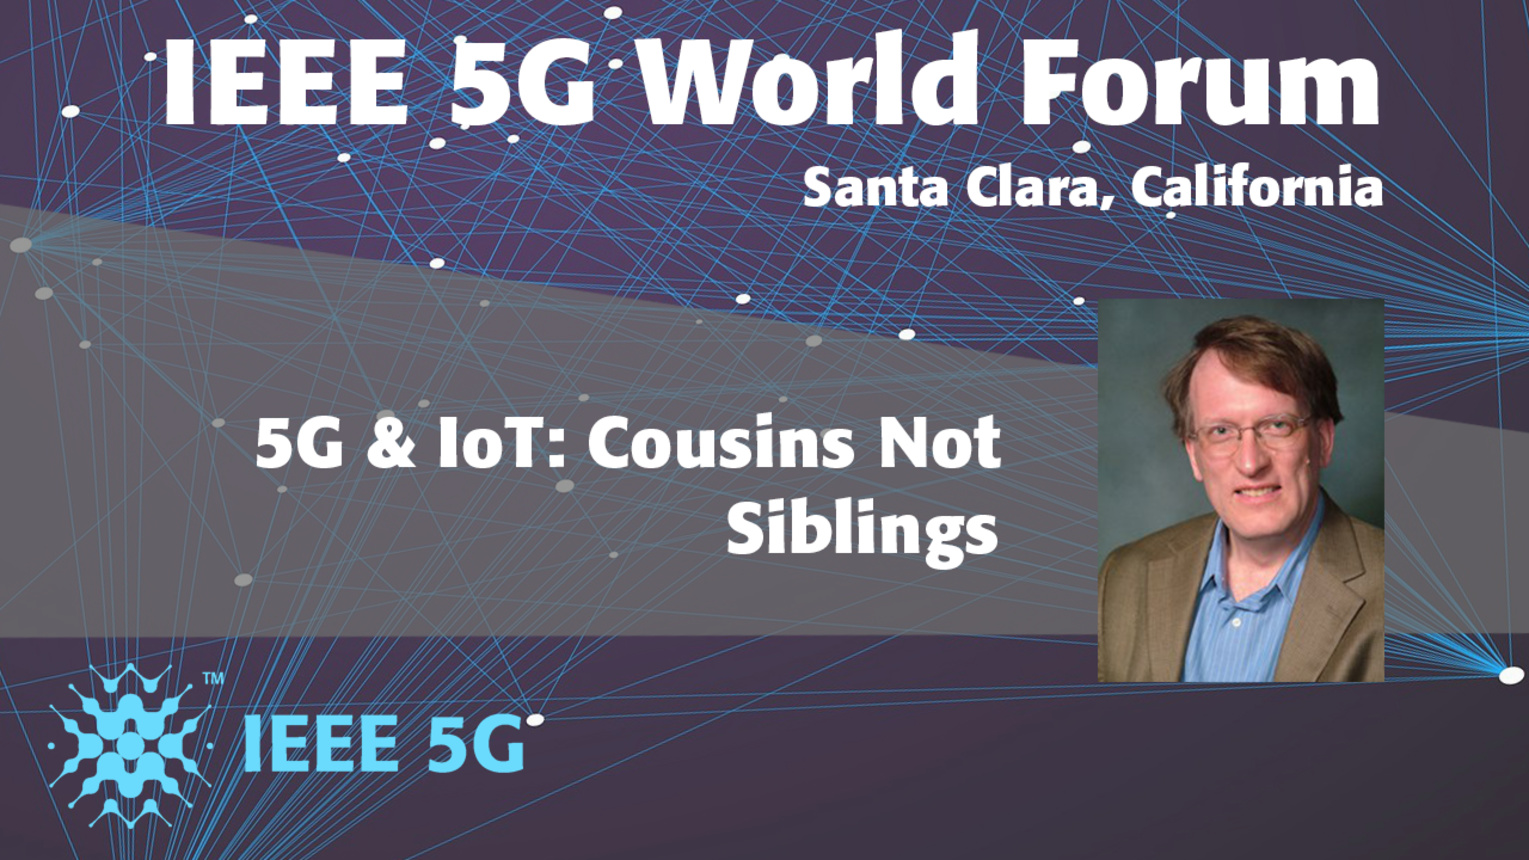 5G & IoT: Cousins Not Siblings - Henning Schulzrinne - 5G World Forum Santa Clara 2018